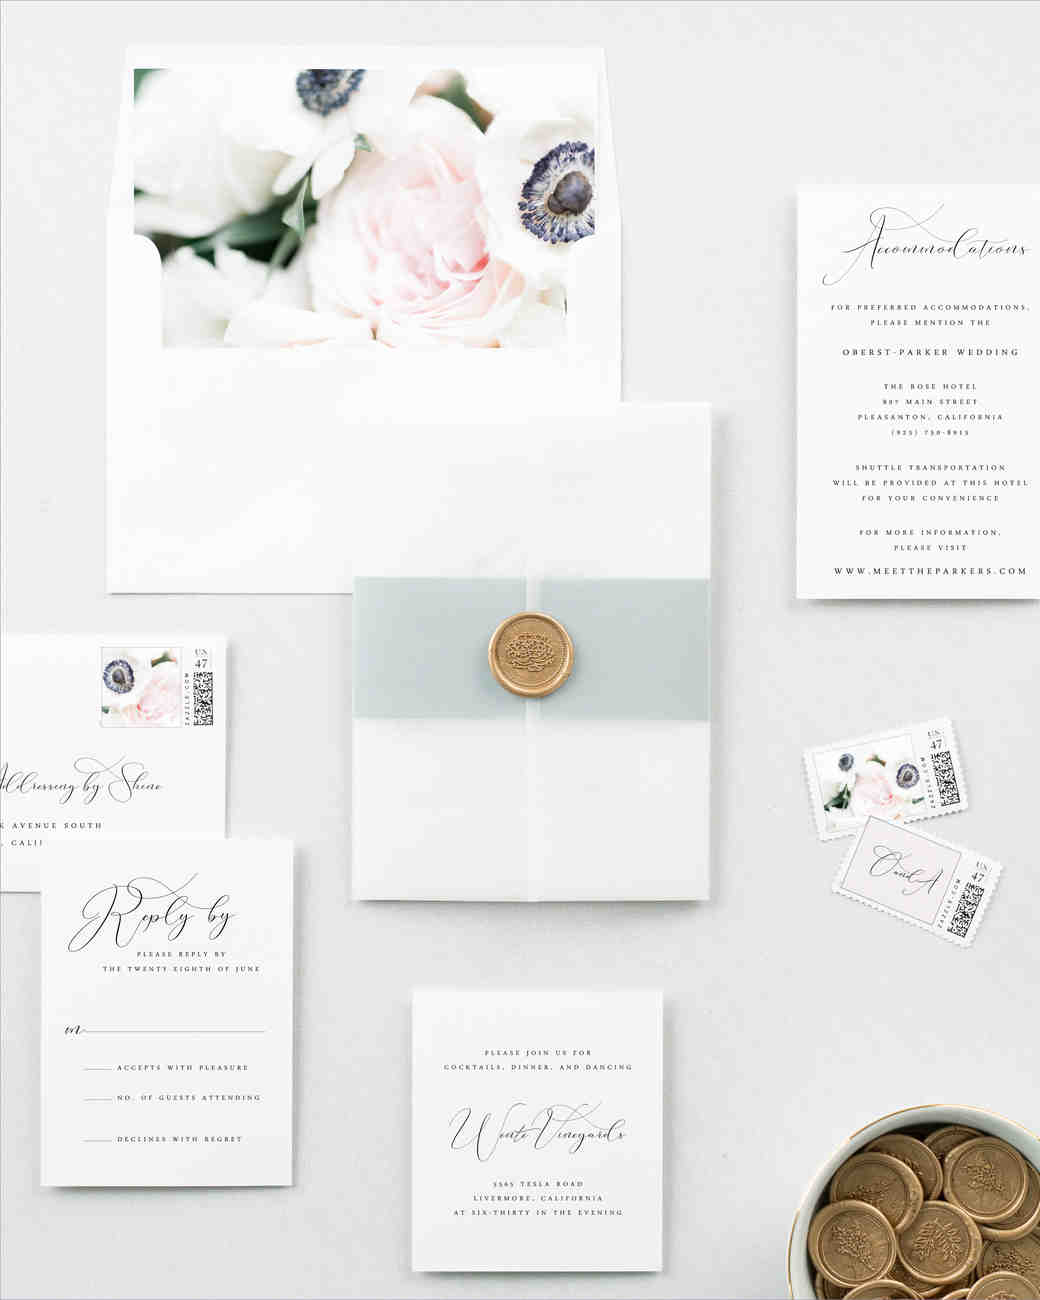 6x9 Wedding Invitation Envelopes: The Prettiest Floral Wedding Invitations